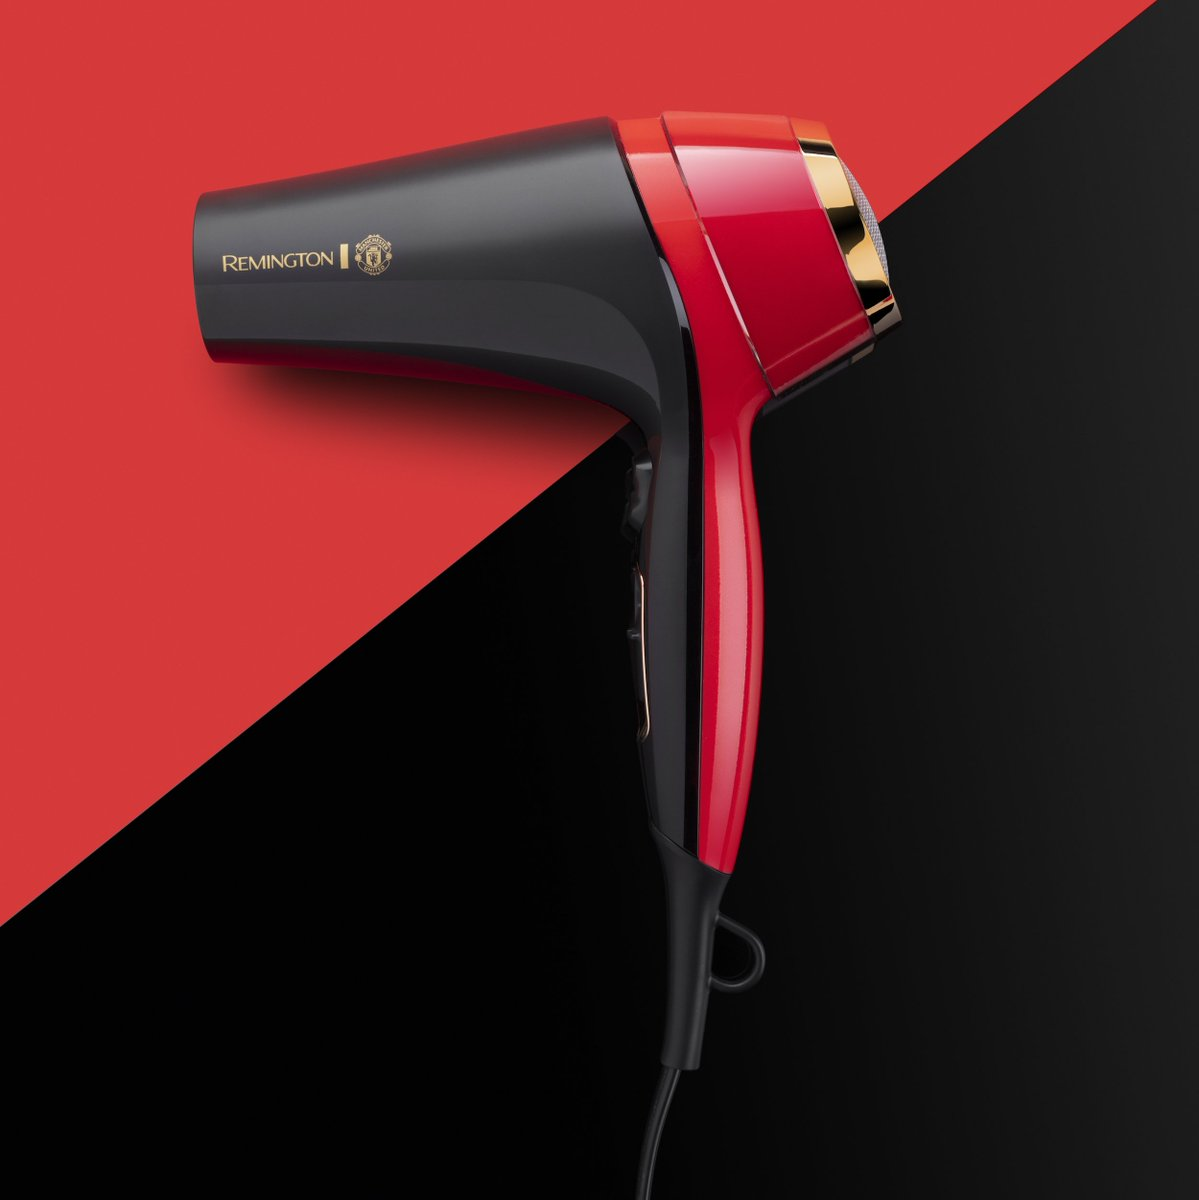 Introducing the Thermacare Dryer, the new must have hairdryer for every @ManUtd lover.  #ManUtd #TheStoryOfYou #Football #MUFC #Manchester_United